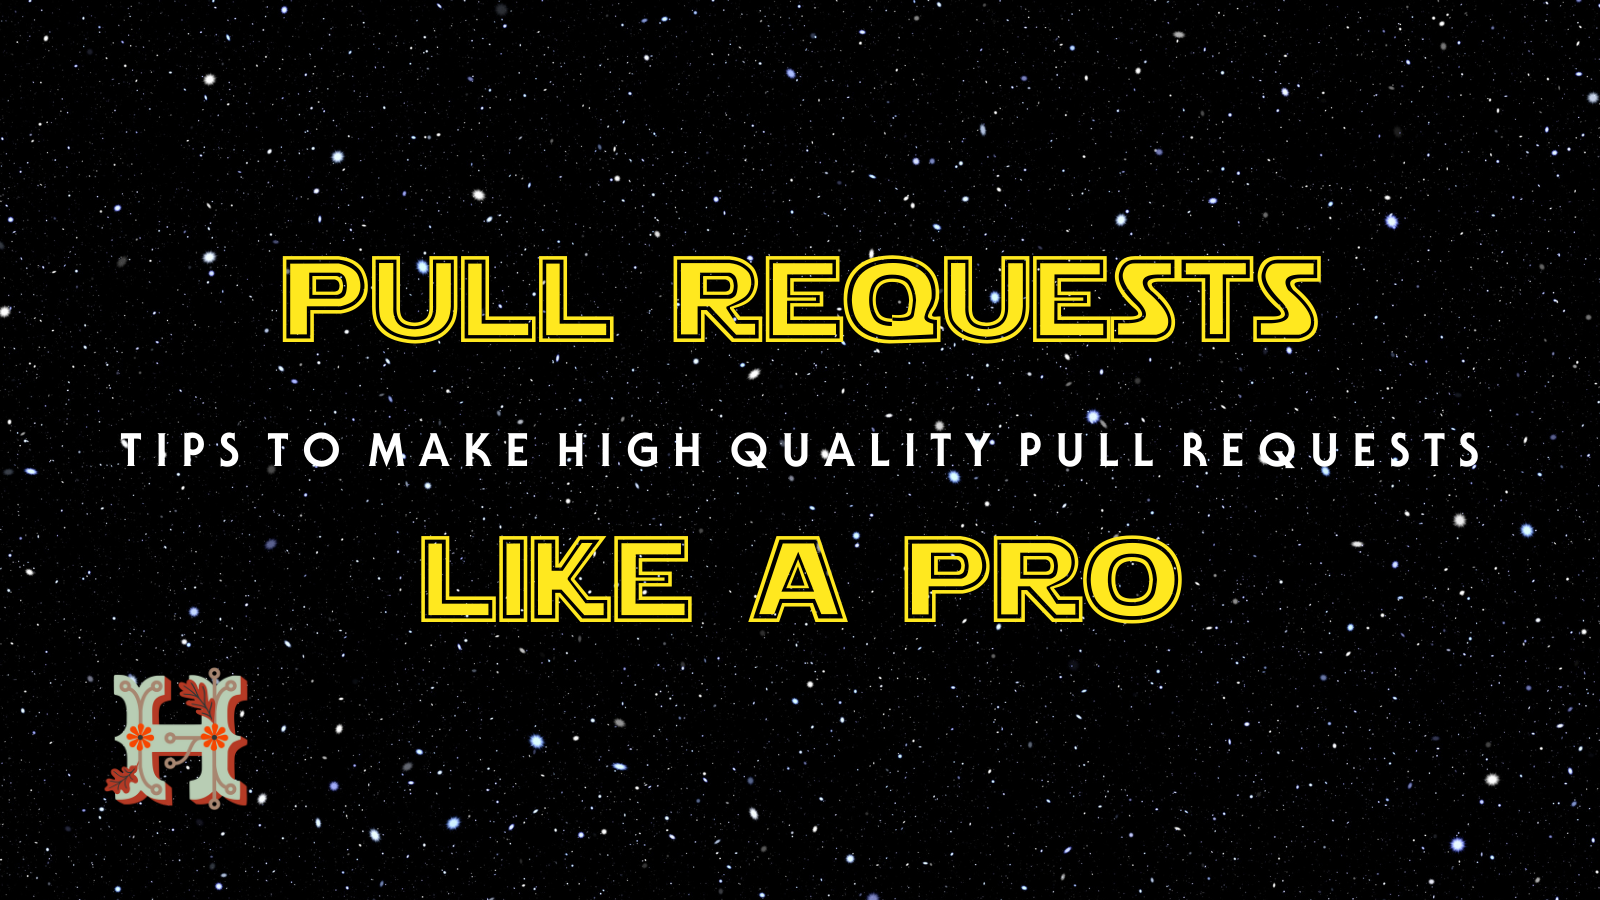 Image that shows Pull Requests Like a PRO